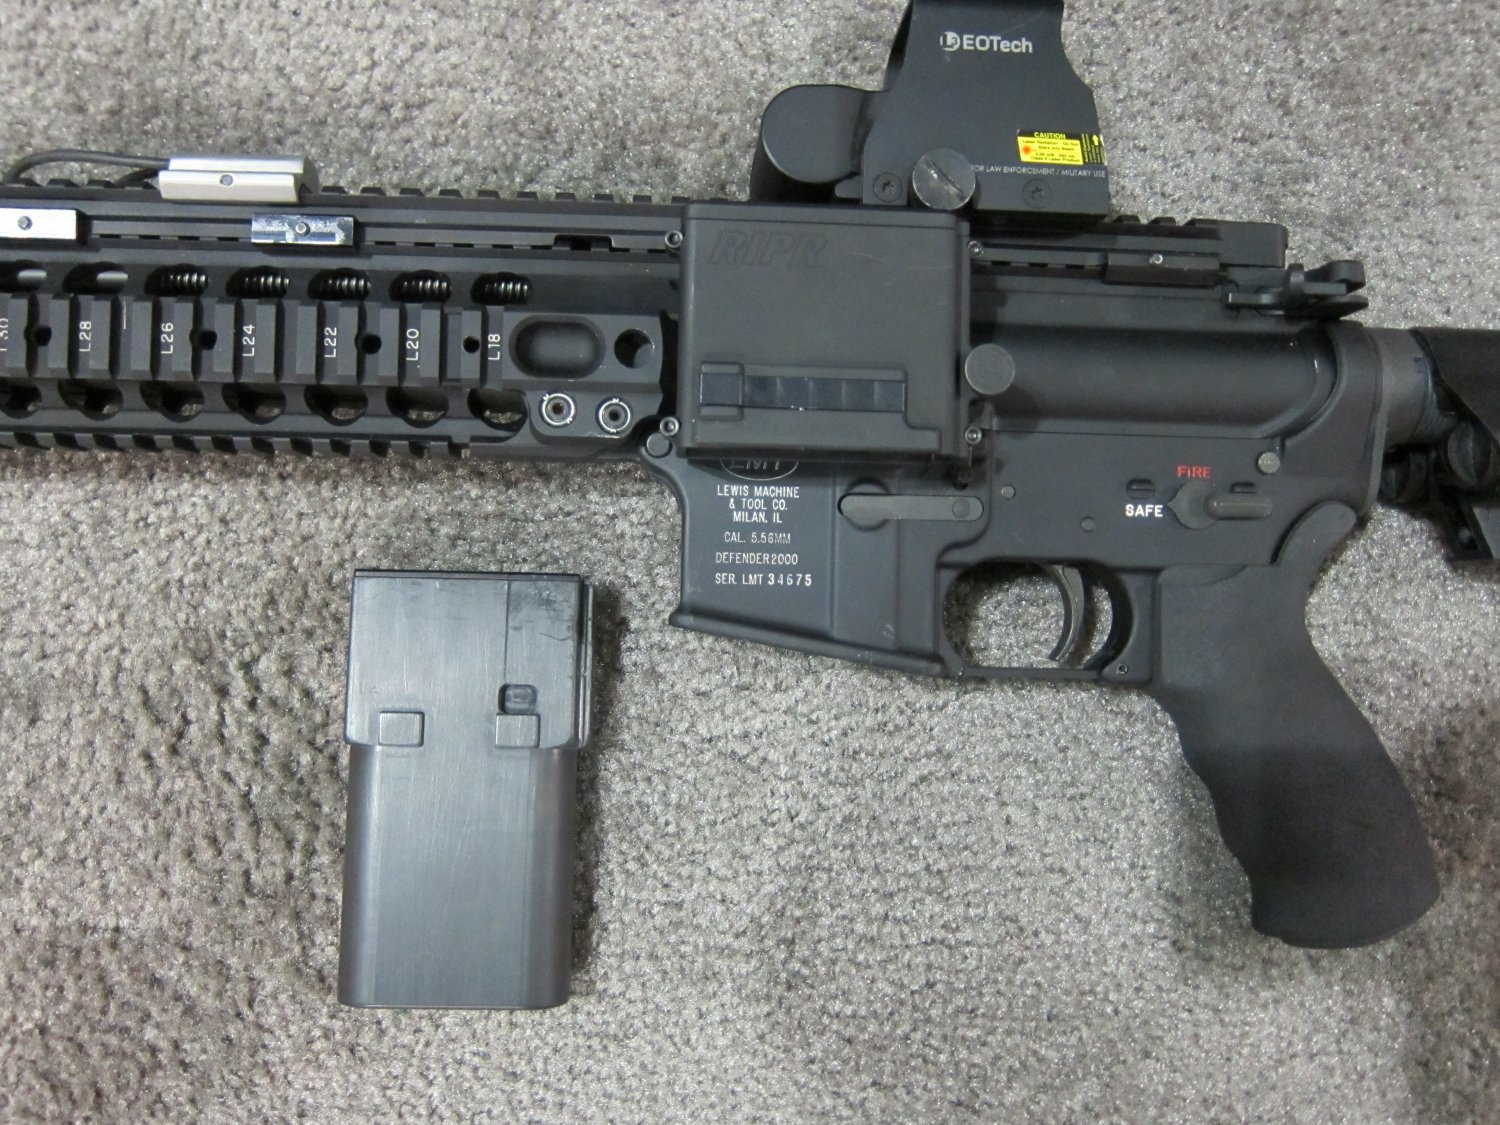 Reset RIPR Rifle Integrated Power Rail 7 <!  :en  >Reset RIPR (Rifle Integrated Power Rail): Central Power Source for Tactical AR Rifle/Carbine/SBR Accessories<!  :  >